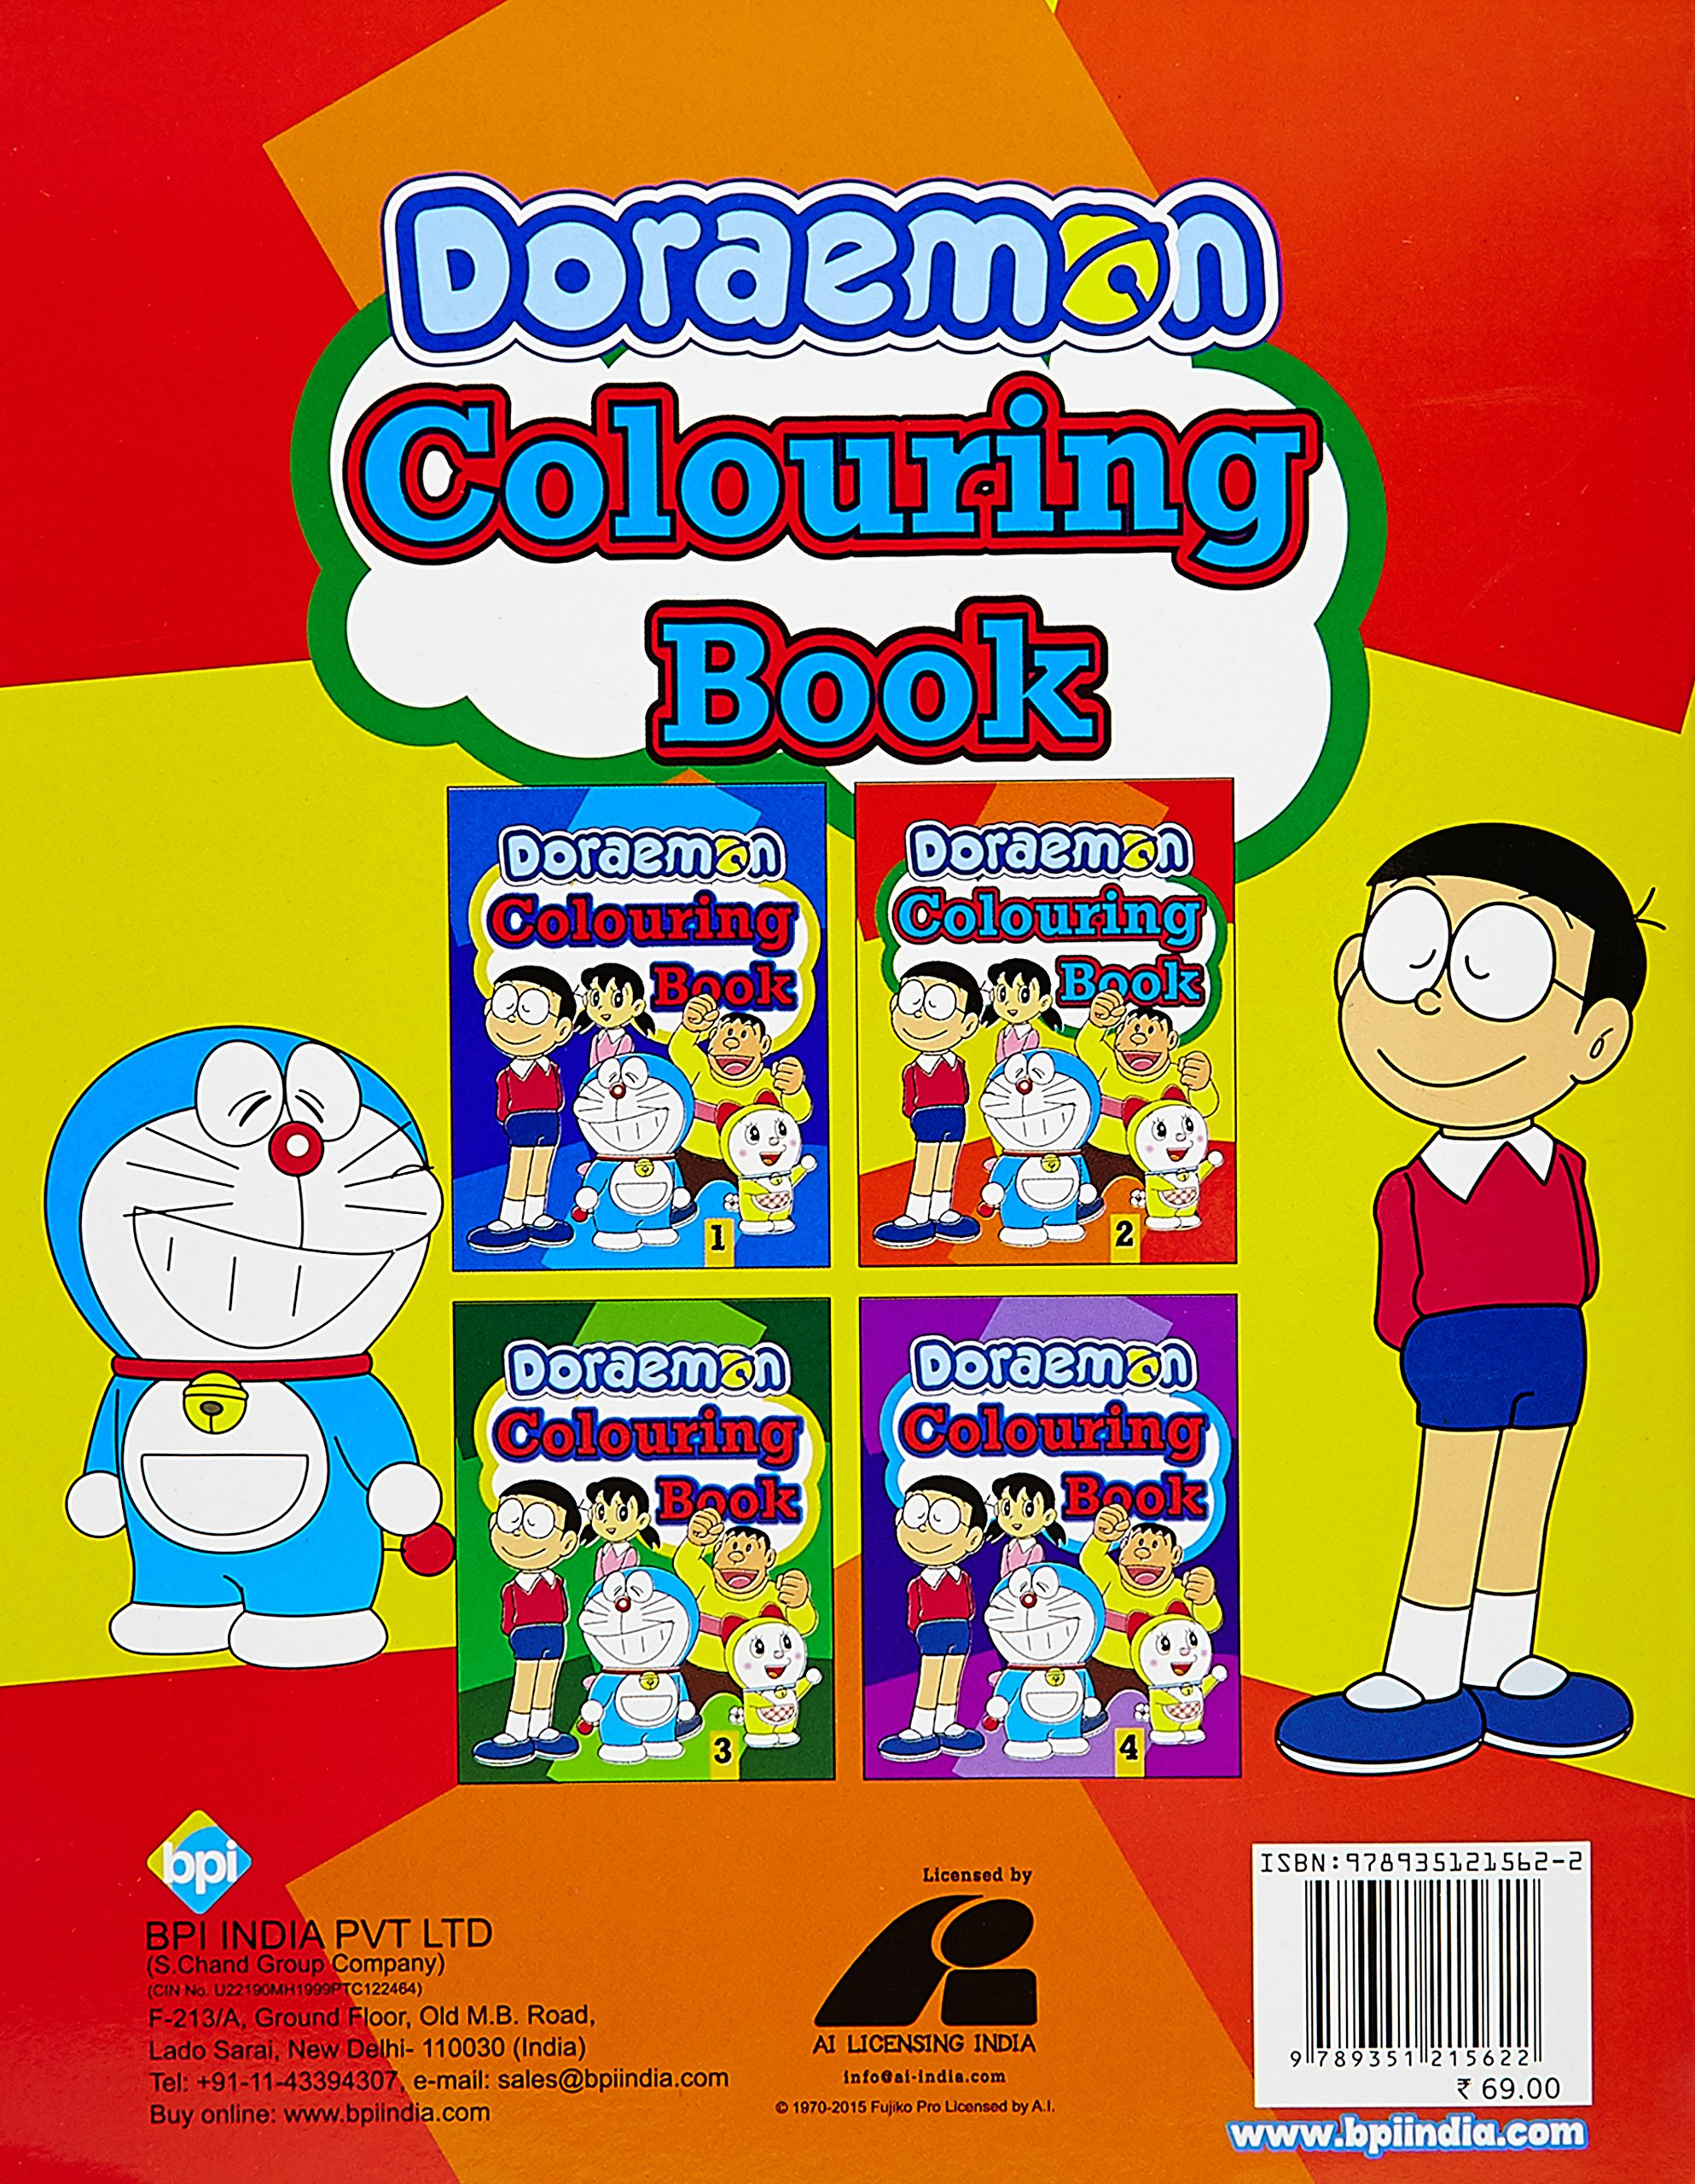 buy doraemon colouring book 2 book online at low prices in india doraemon colouring book 2 reviews ratings amazonin - Doraemon Colouring Book